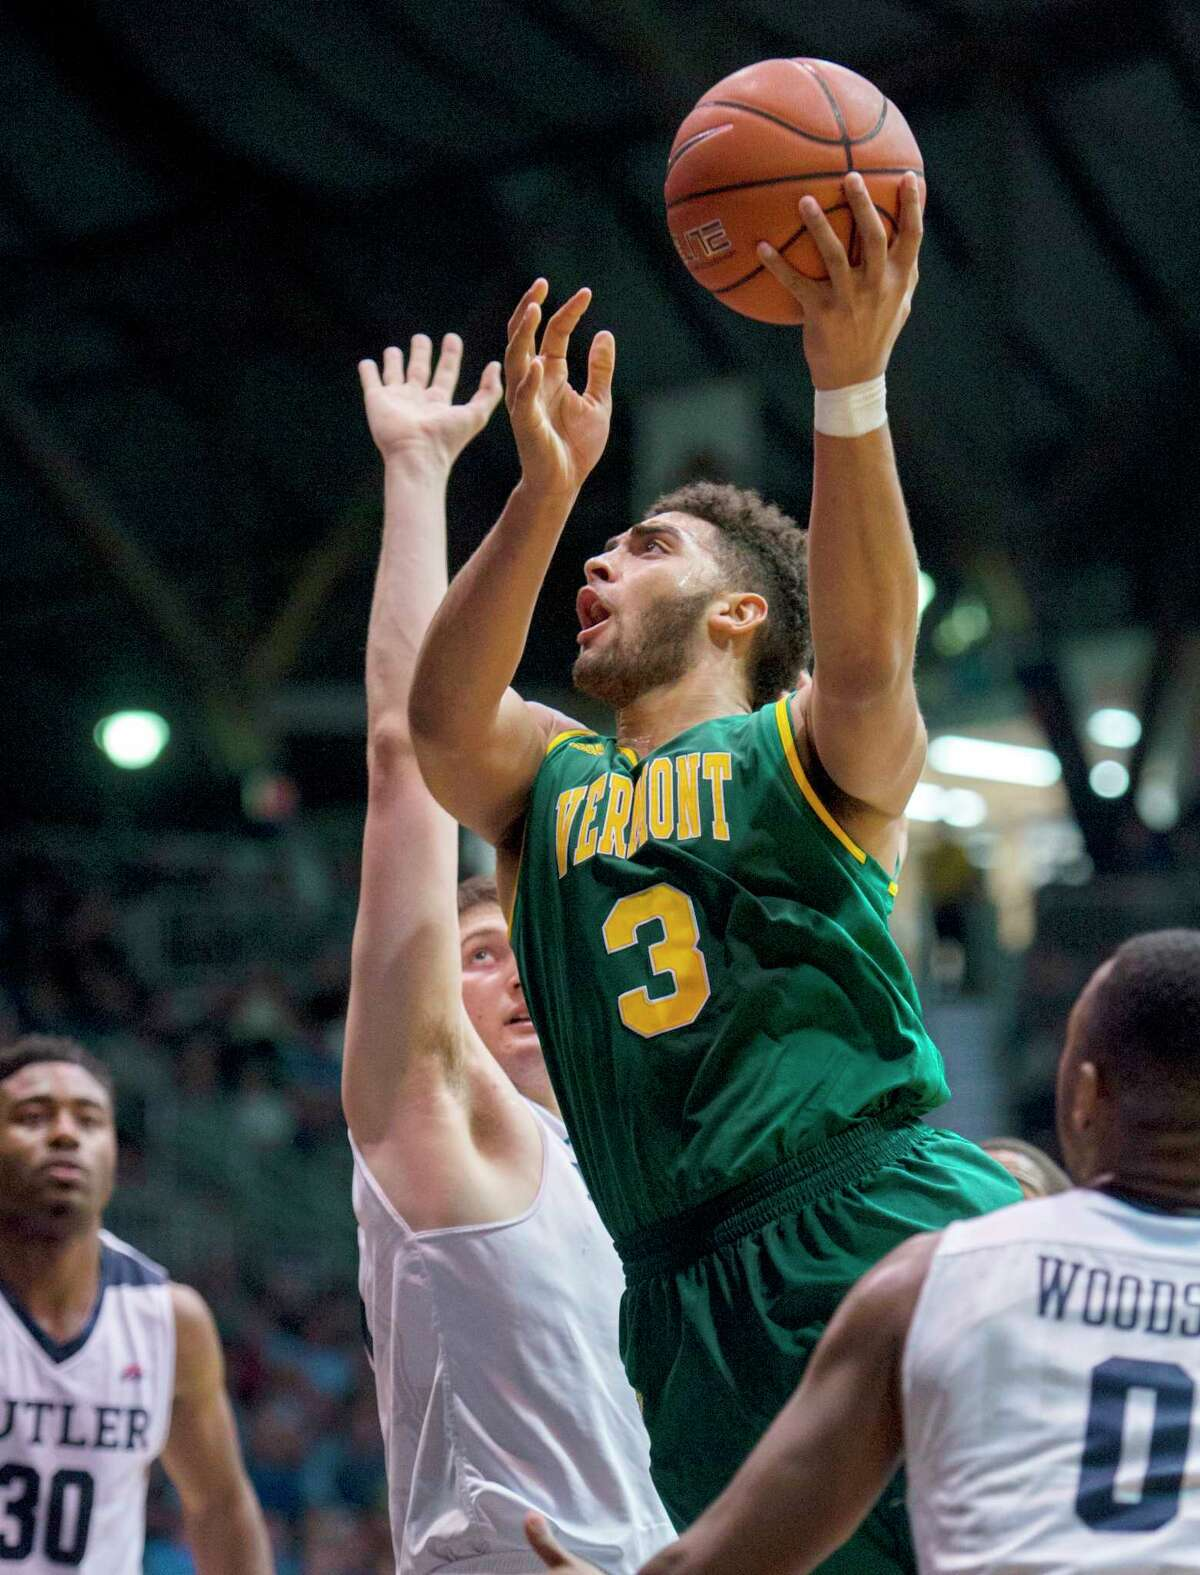 FILE - In this Dec. 21, 2016, file photo, Vermont forward Anthony Lamb (3) drives the ball through the Butler defense to put up a shot in the first half of an NCAA college basketball game in Indianapolis. The longest winning streak in the 117-year history of Vermont basketball, 18 games, is now the longest current winning streak in all of NCAA Division I. The Catamounts (26-5) took over the top spot Saturday night, Feb. 25, 2017, after then top-ranked Gonzaga (29-1) lost to BYU. (AP Photo/Doug McSchooler, File) ORG XMIT: NY160